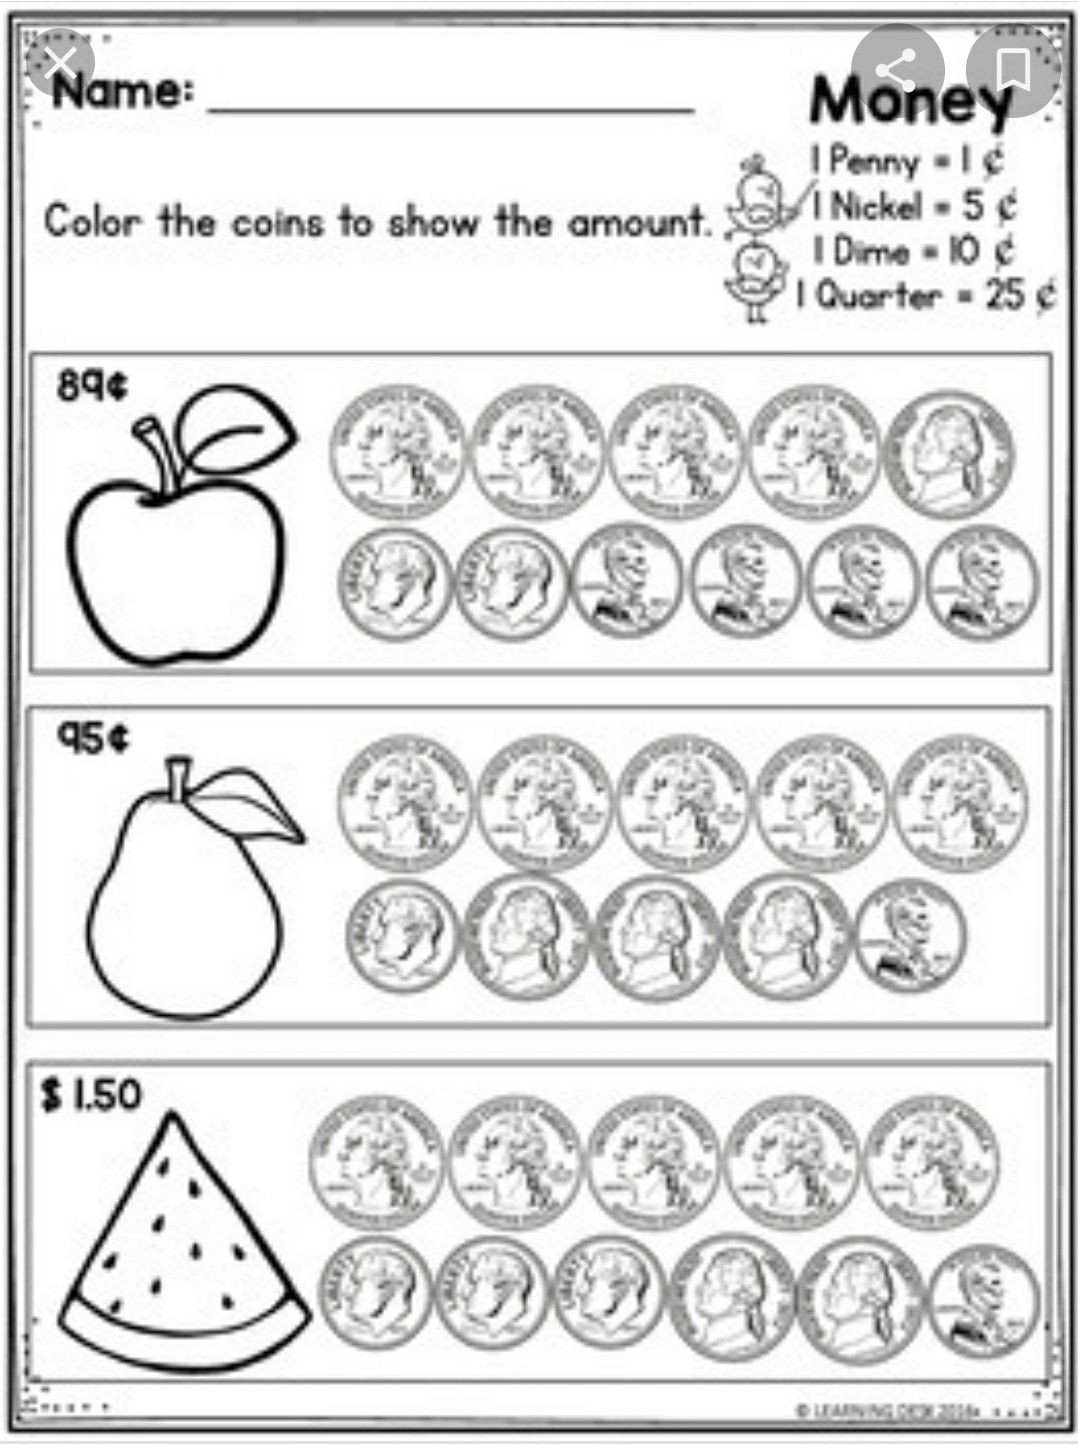 Counting Coins Worksheets First Grade Pin by Jan Tanega On Math Worksheets In 2020